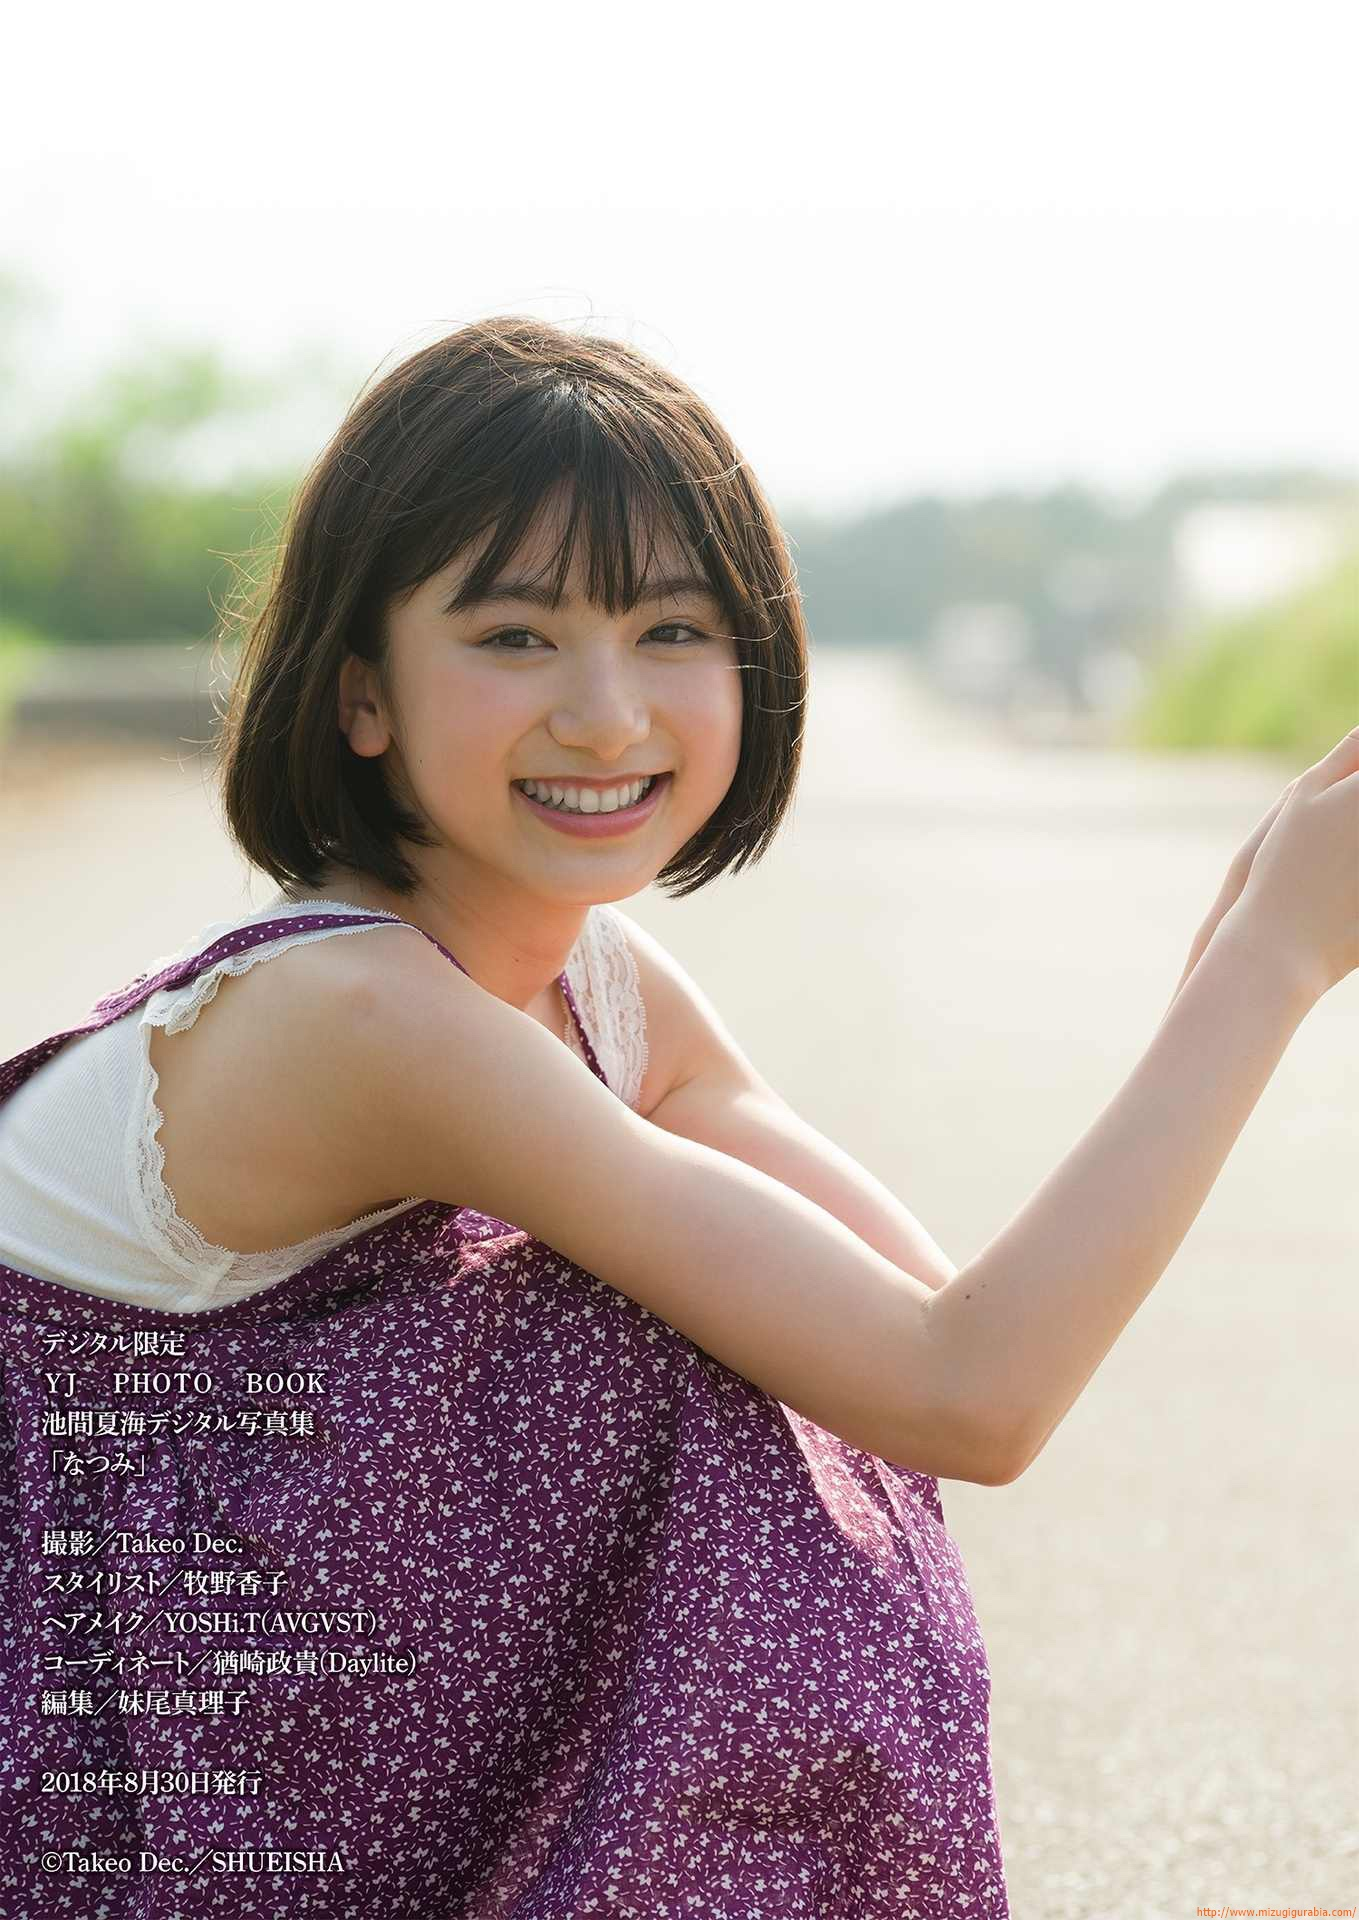 First swimsuit gravure of a beautiful girl of 16 years old topic033